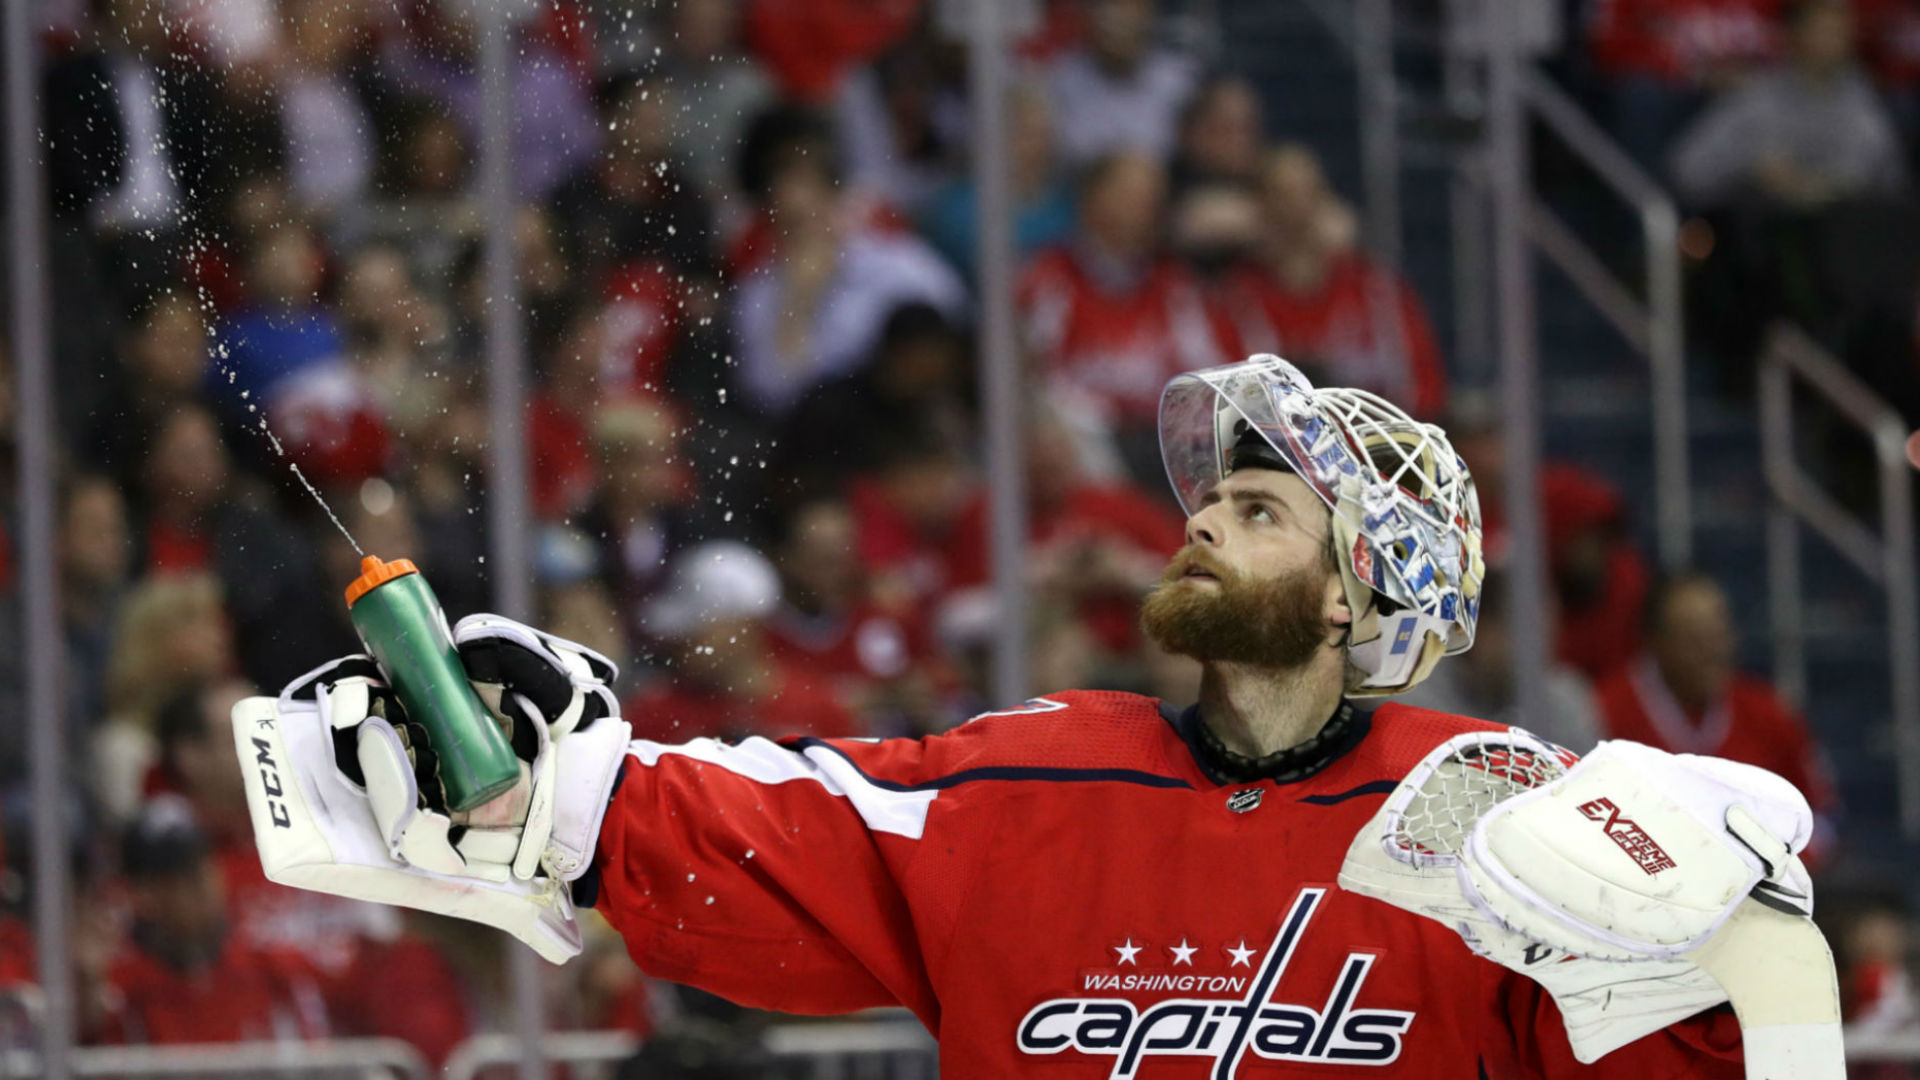 Nhl Free Agency Predictions 2020 Goalies Drive4five